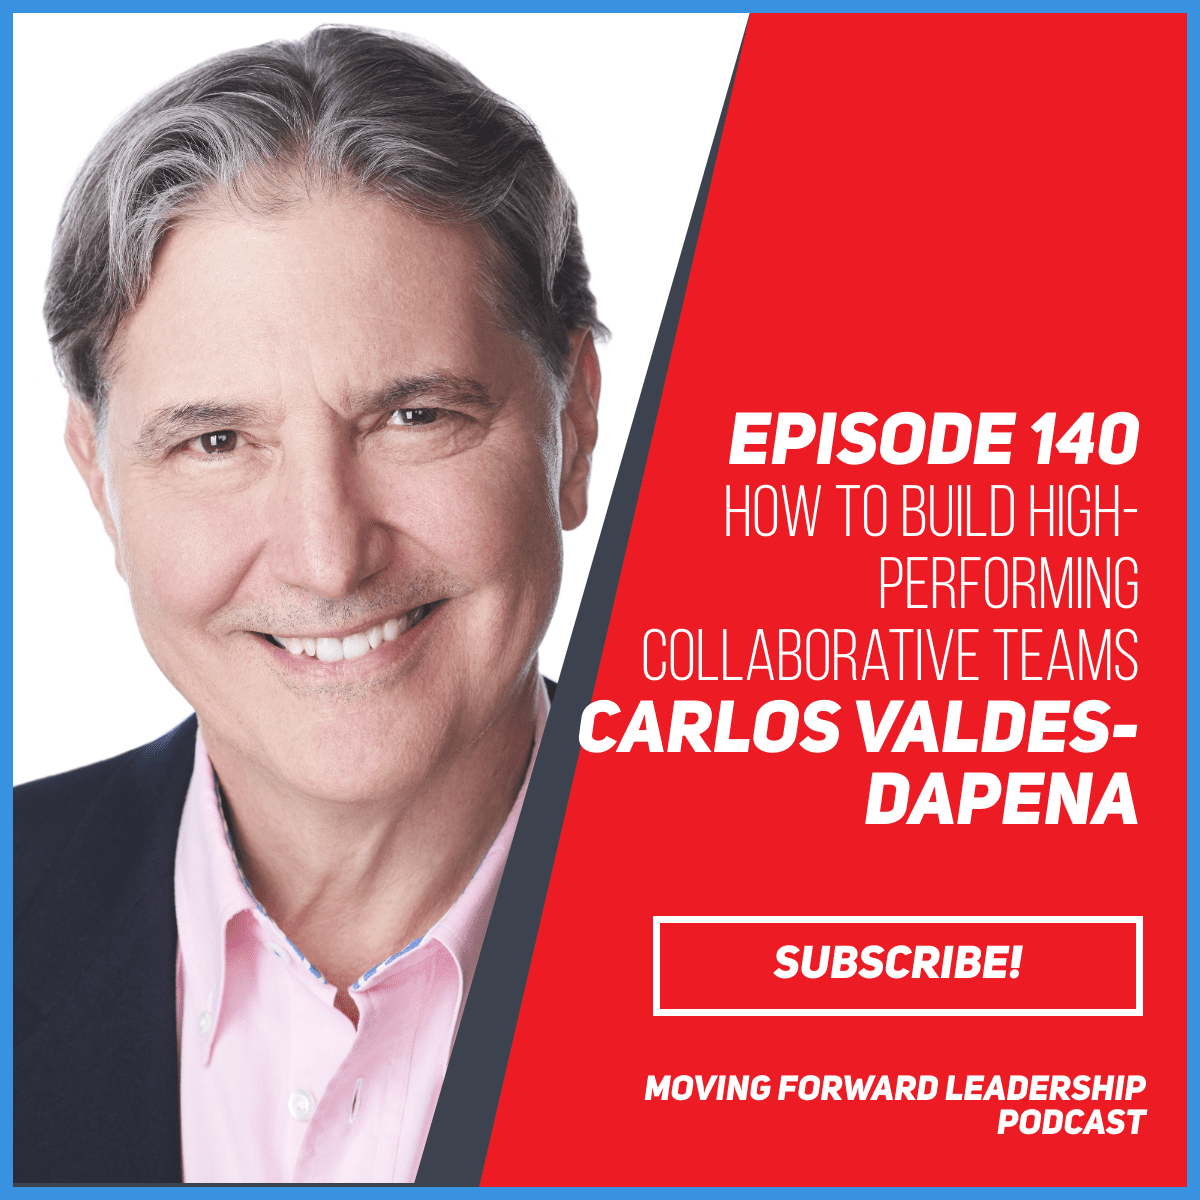 How to Build High-Performing Collaborative Teams | Carlos Valdes-Dapena | Episode 140